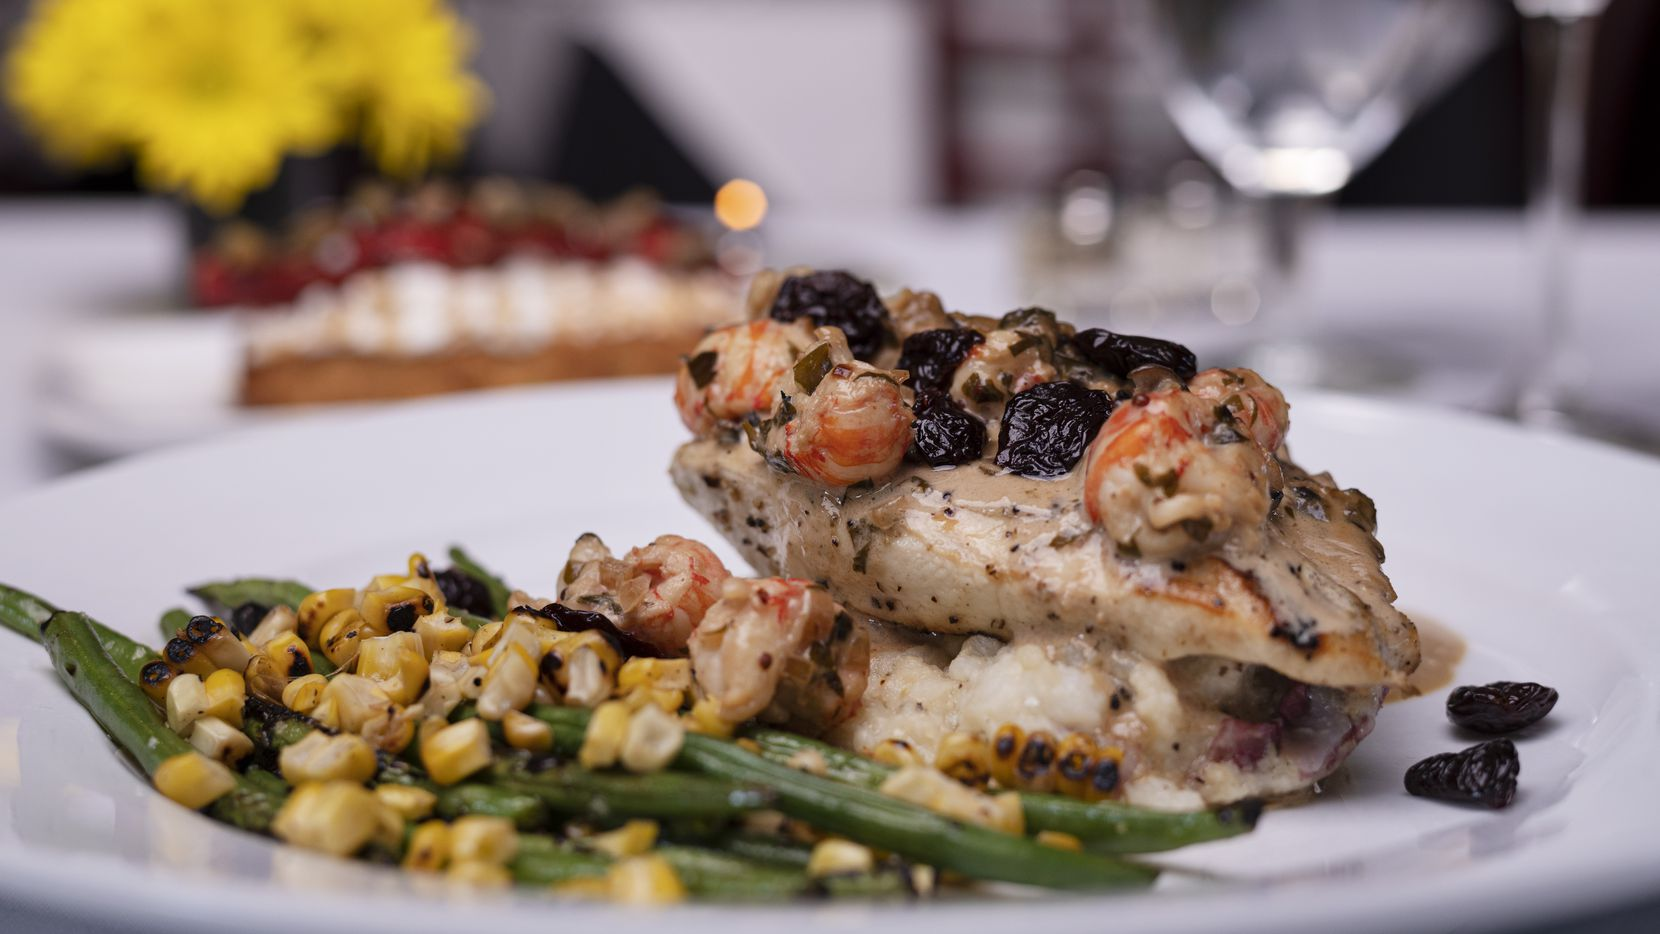 Grilled turkey breast with langoustine tails and cognac sauce and served with roasted vegetables is on the Christmas menu at Gorji Restaurant this year.